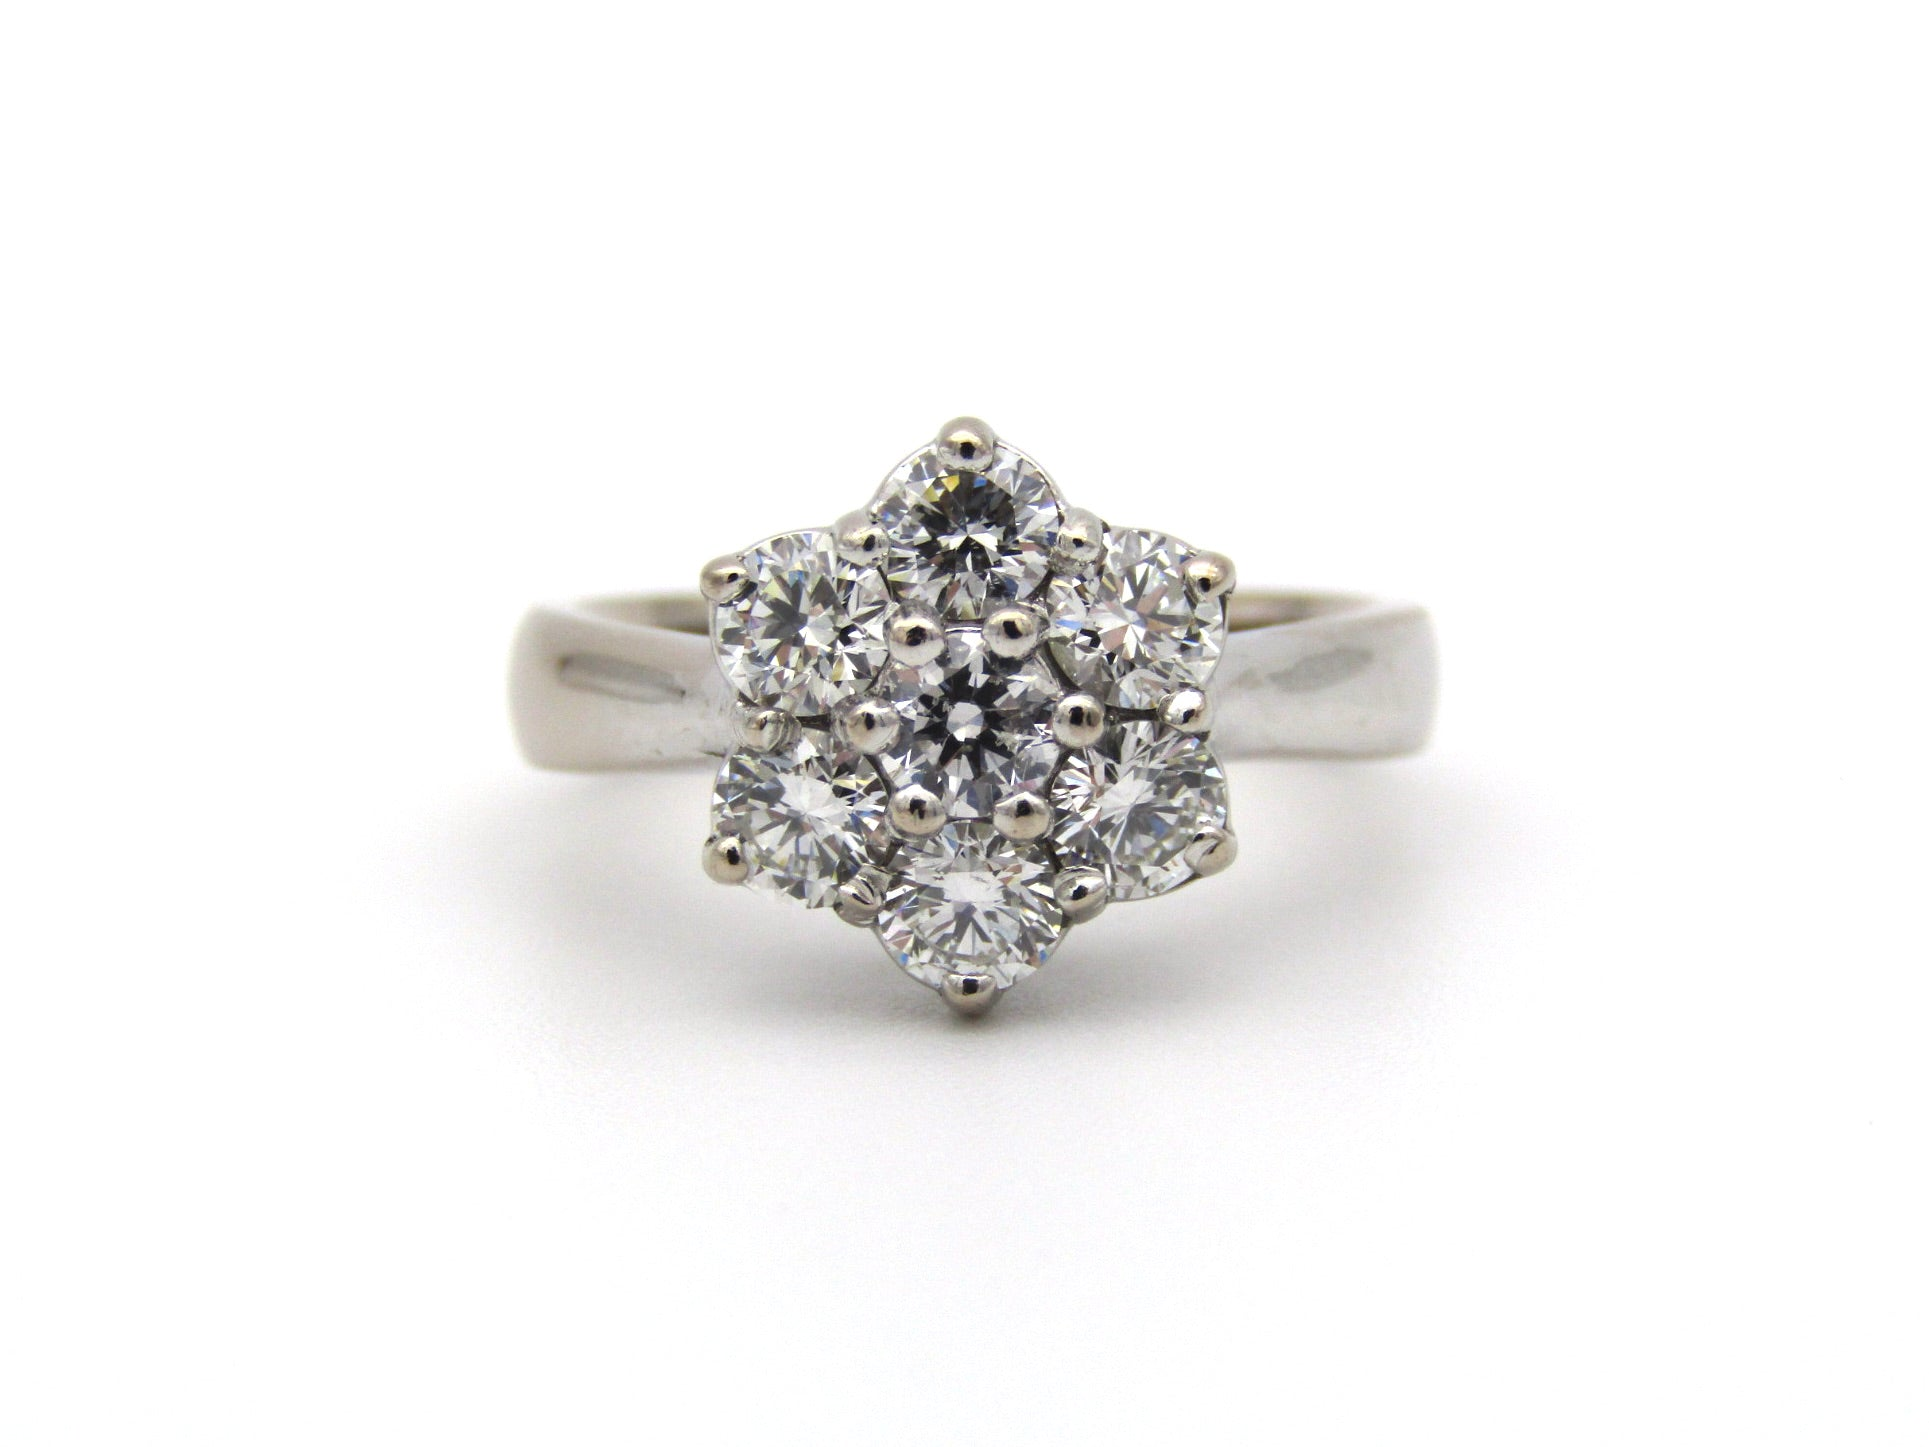 18K gold diamond flower ring by Browns.